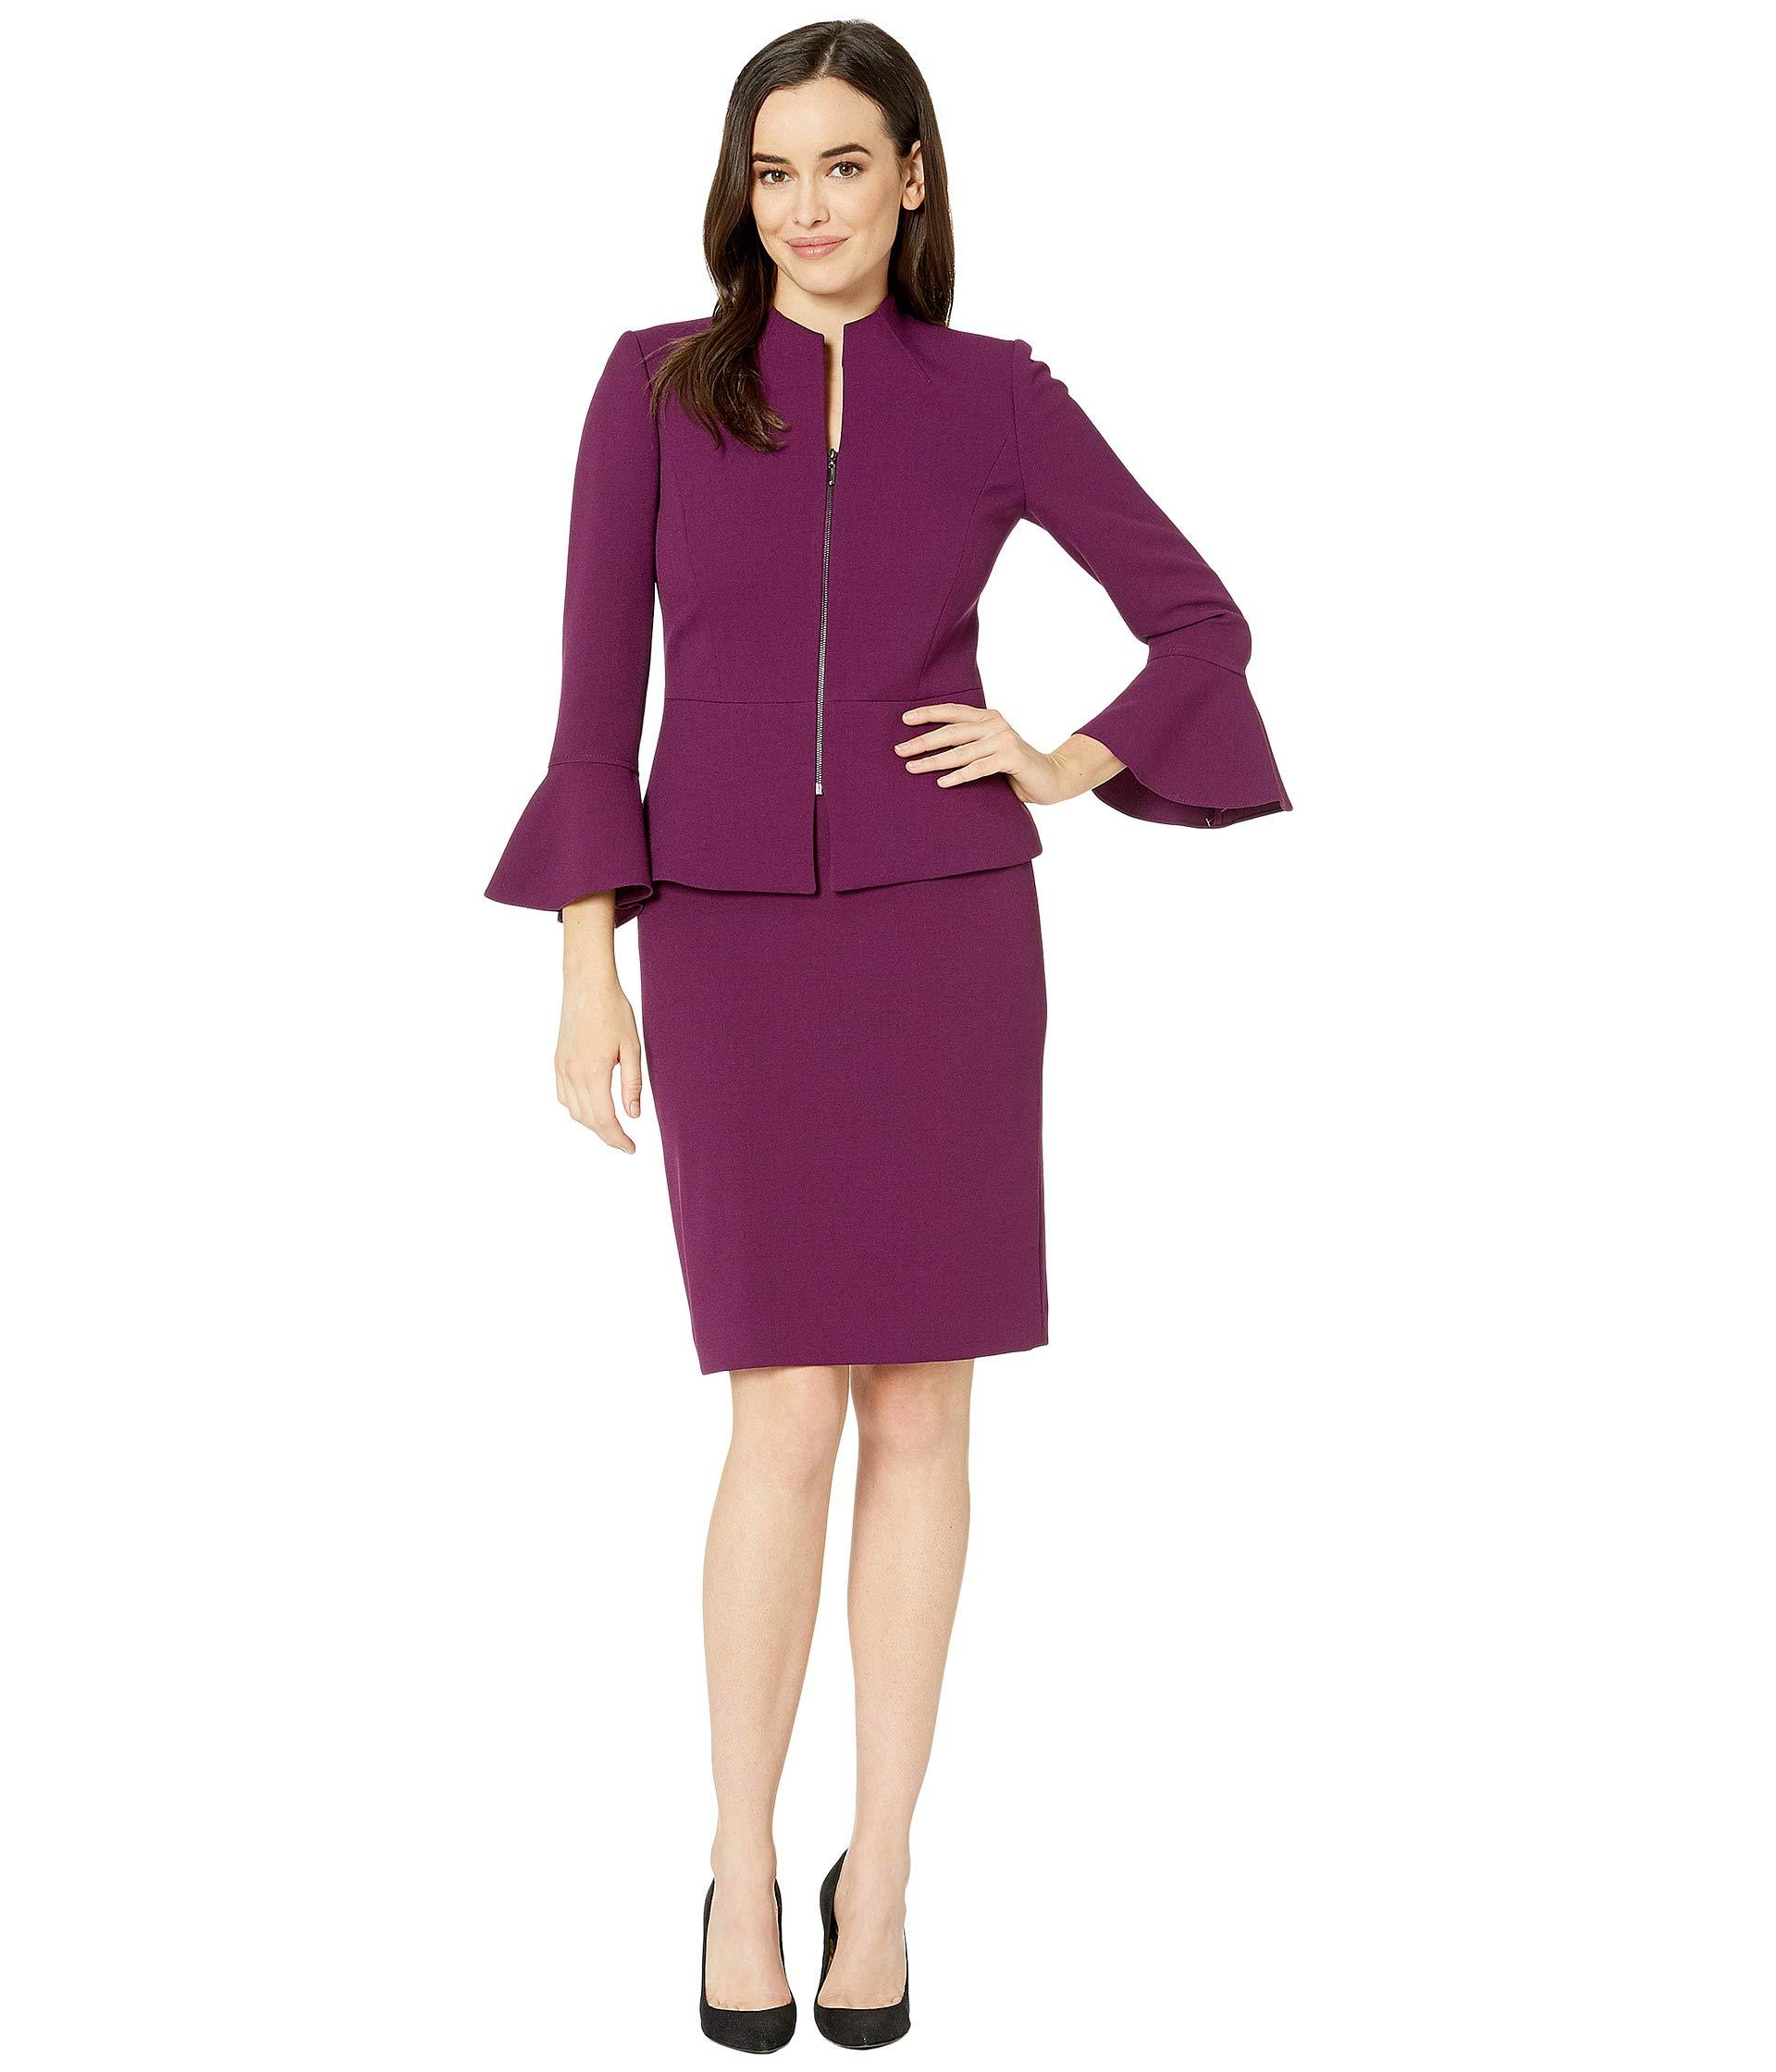 bac6560c887a Lyst - Tahari Skirt Suit With Collarless Jacket in Purple